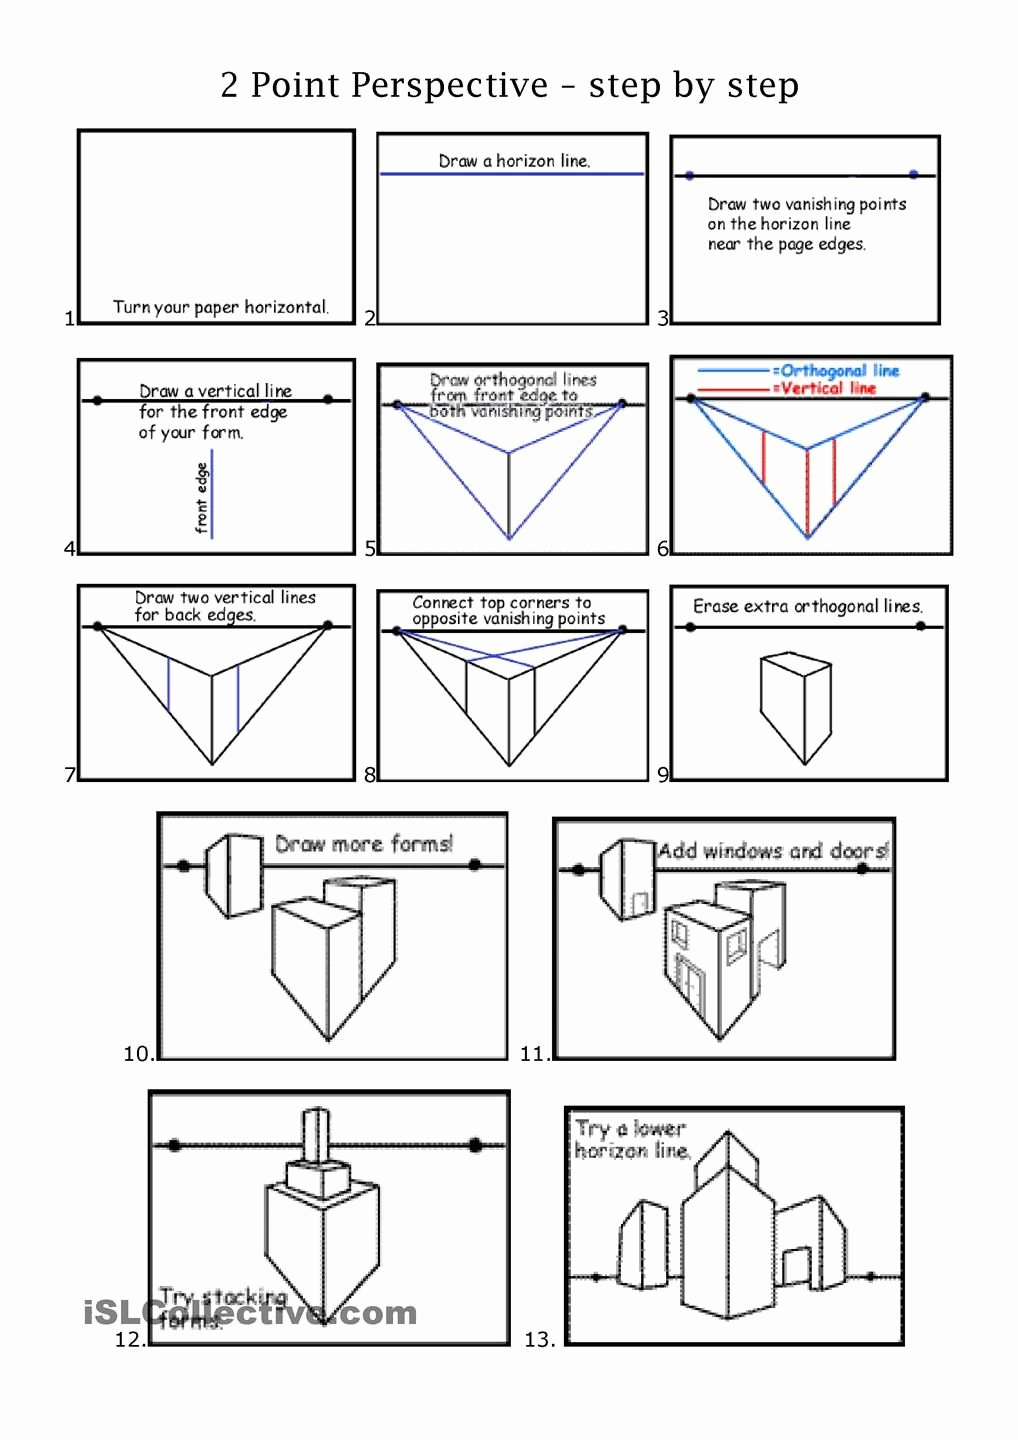 One Point Perspective Worksheet Awesome 2pt Perspective Middle School Art